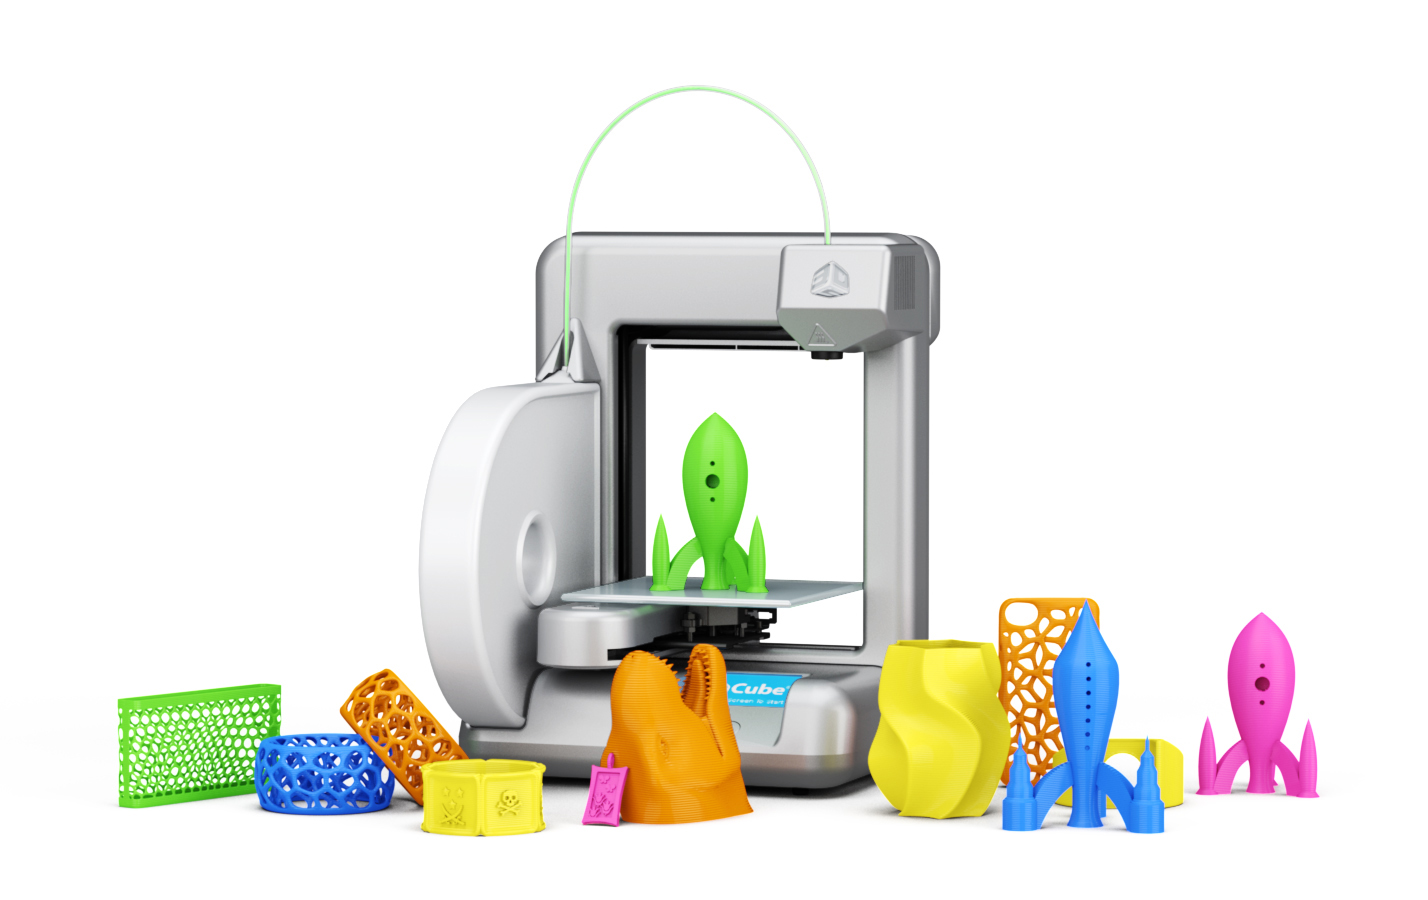 3 d printer creations clipart graphic royalty free Cube 3d Printer | In Tech We LoveIn Tech We Love graphic royalty free